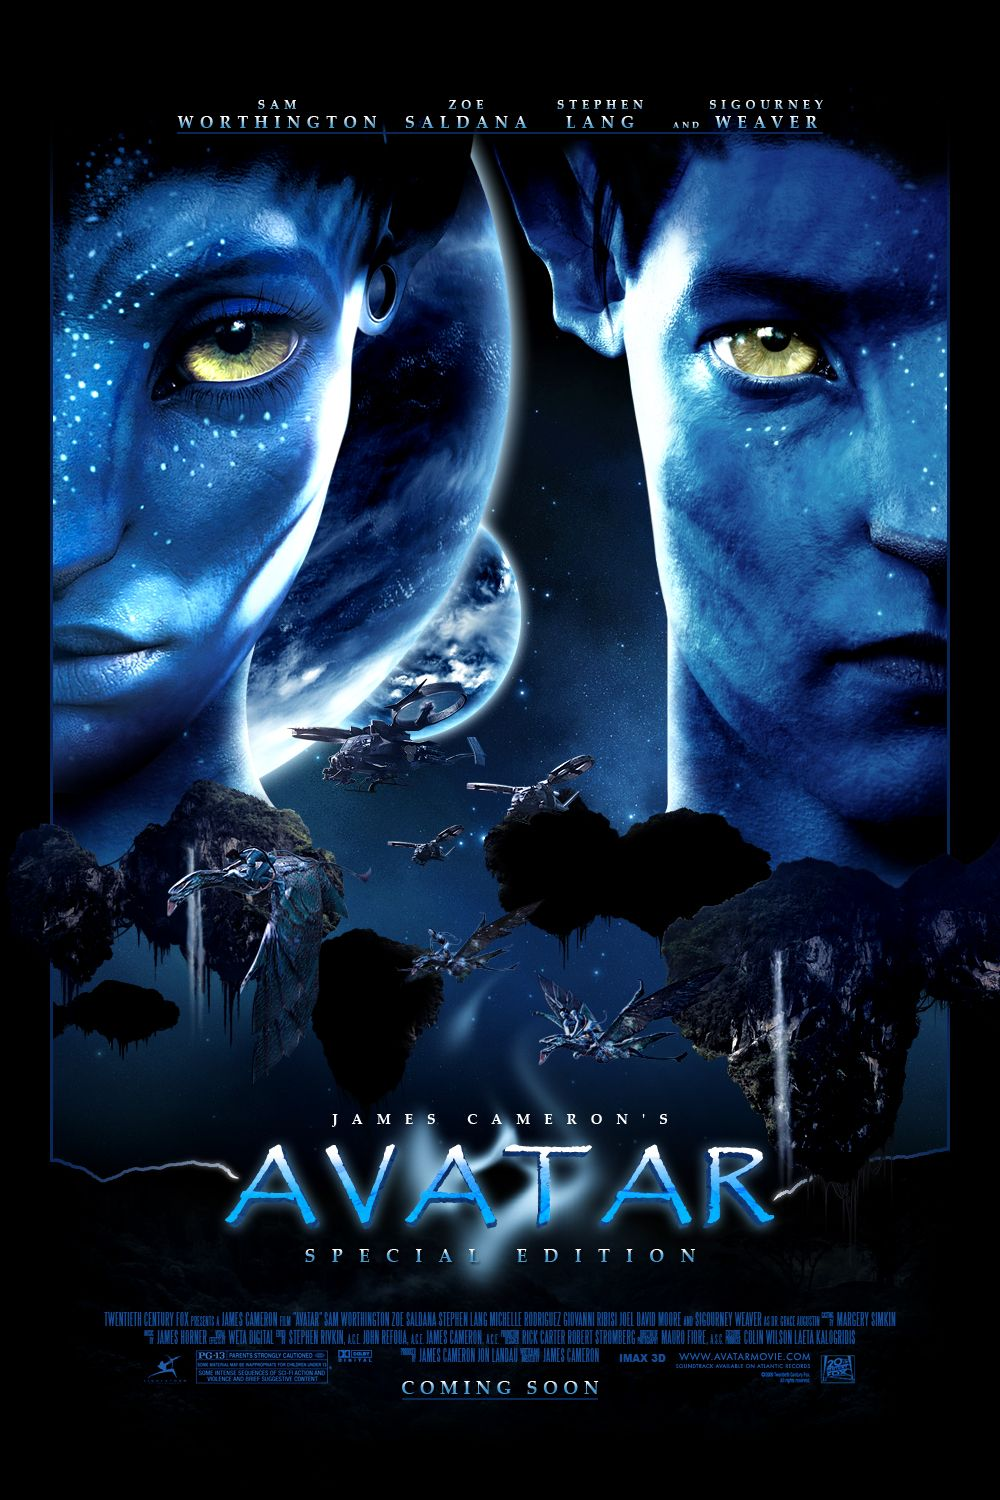 Avatar Special Edition Poster By J K K S On Deviantart Avatar Movie Avatar Full Movie Avatar Poster